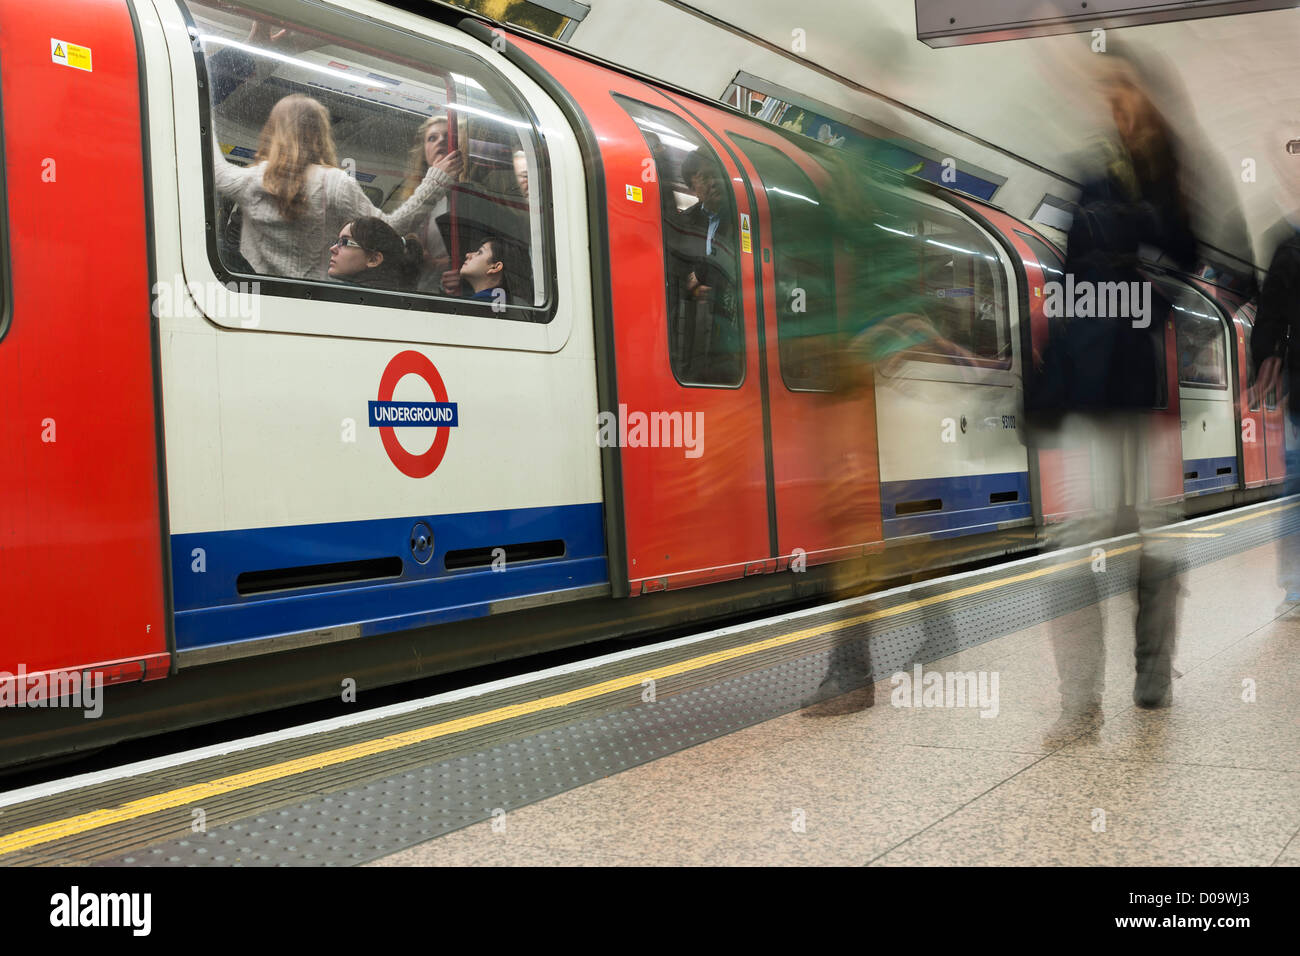 London Tube Station - Stock Image